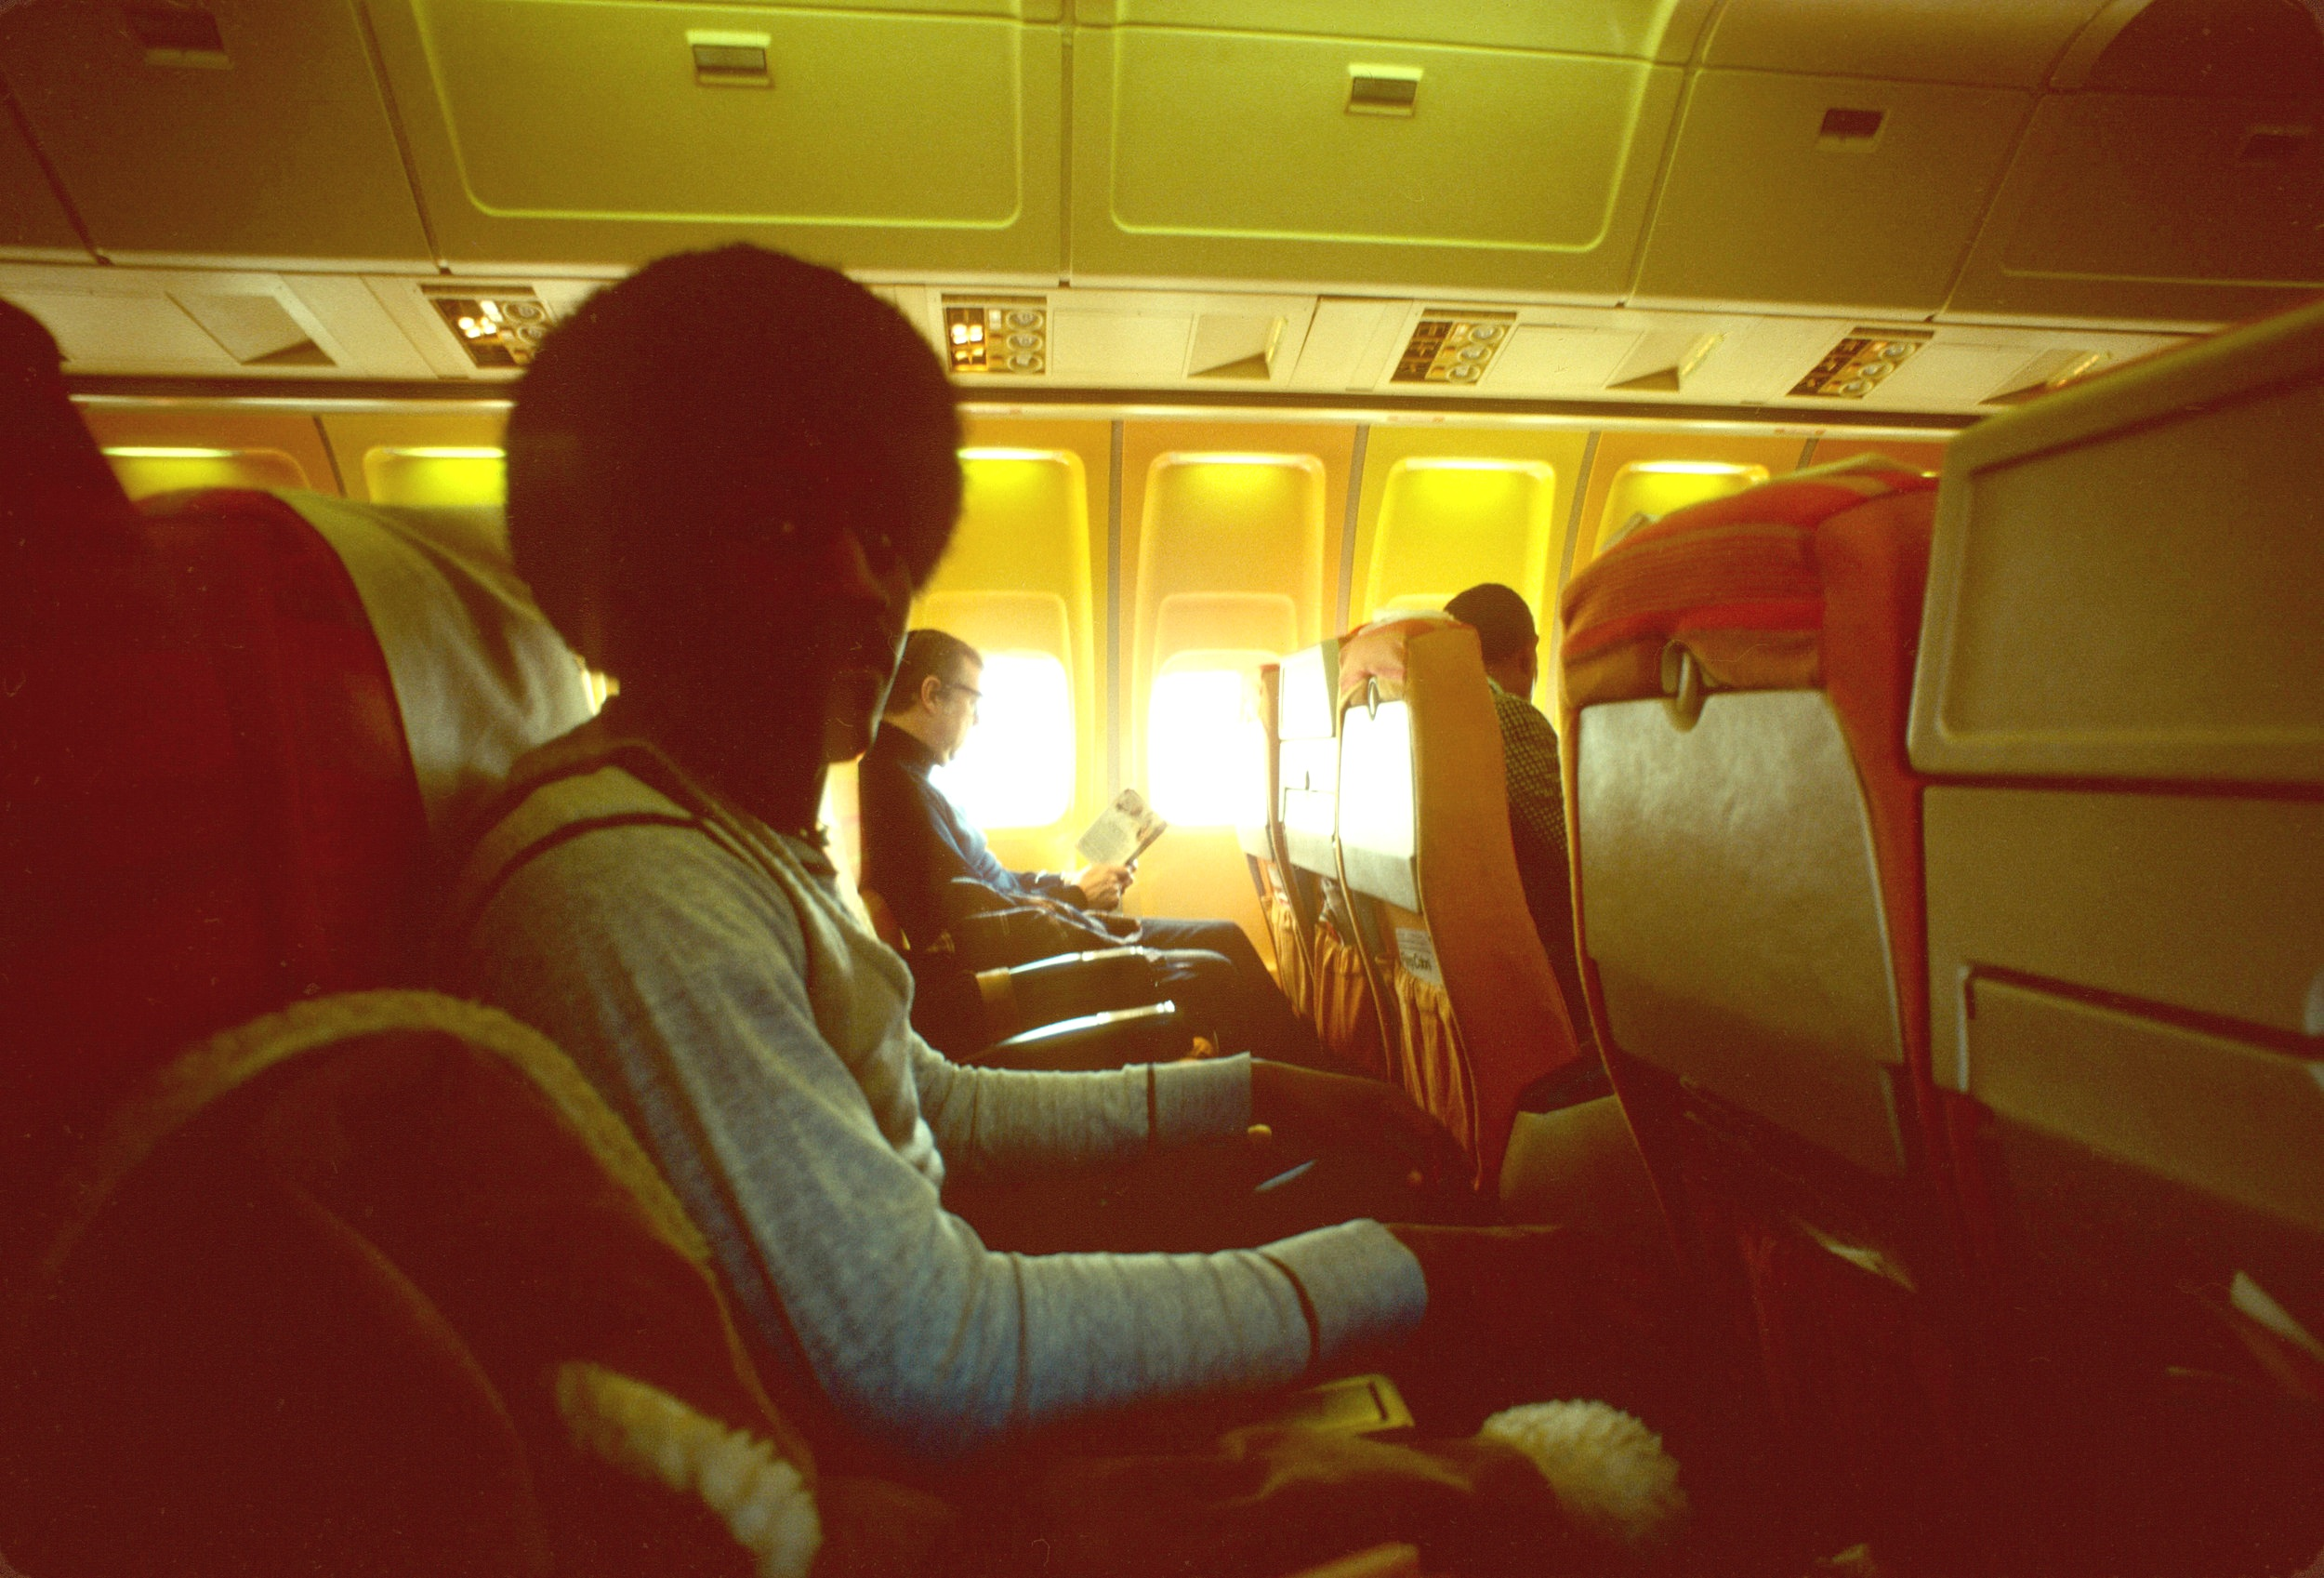 Vance Hawthorne, Hilltop features editor, on the flight to Lagos, Nigeria and Festac '77.